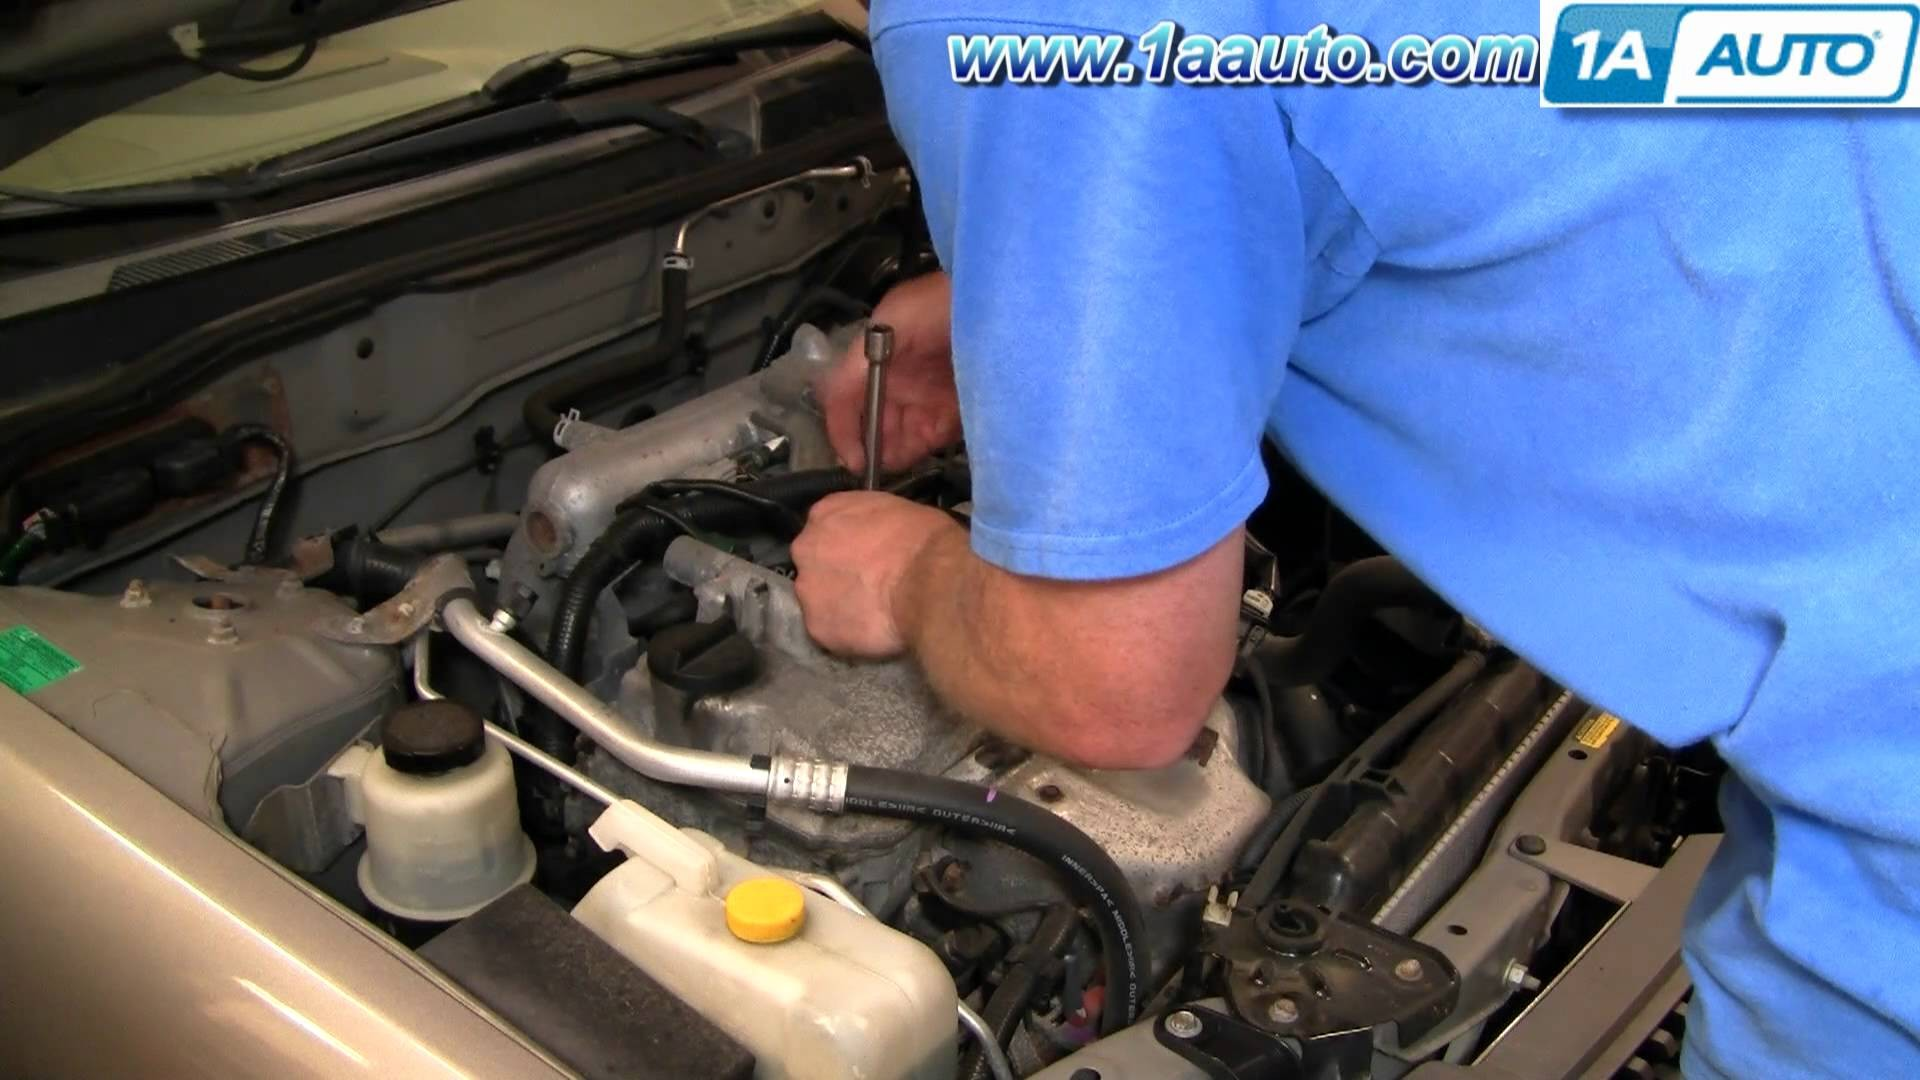 1994 Nissan Sentra Engine Diagram 1997 2007 Kia Altima Fuse Box How To Install Replace Spark Plugs 04 06 1aauto